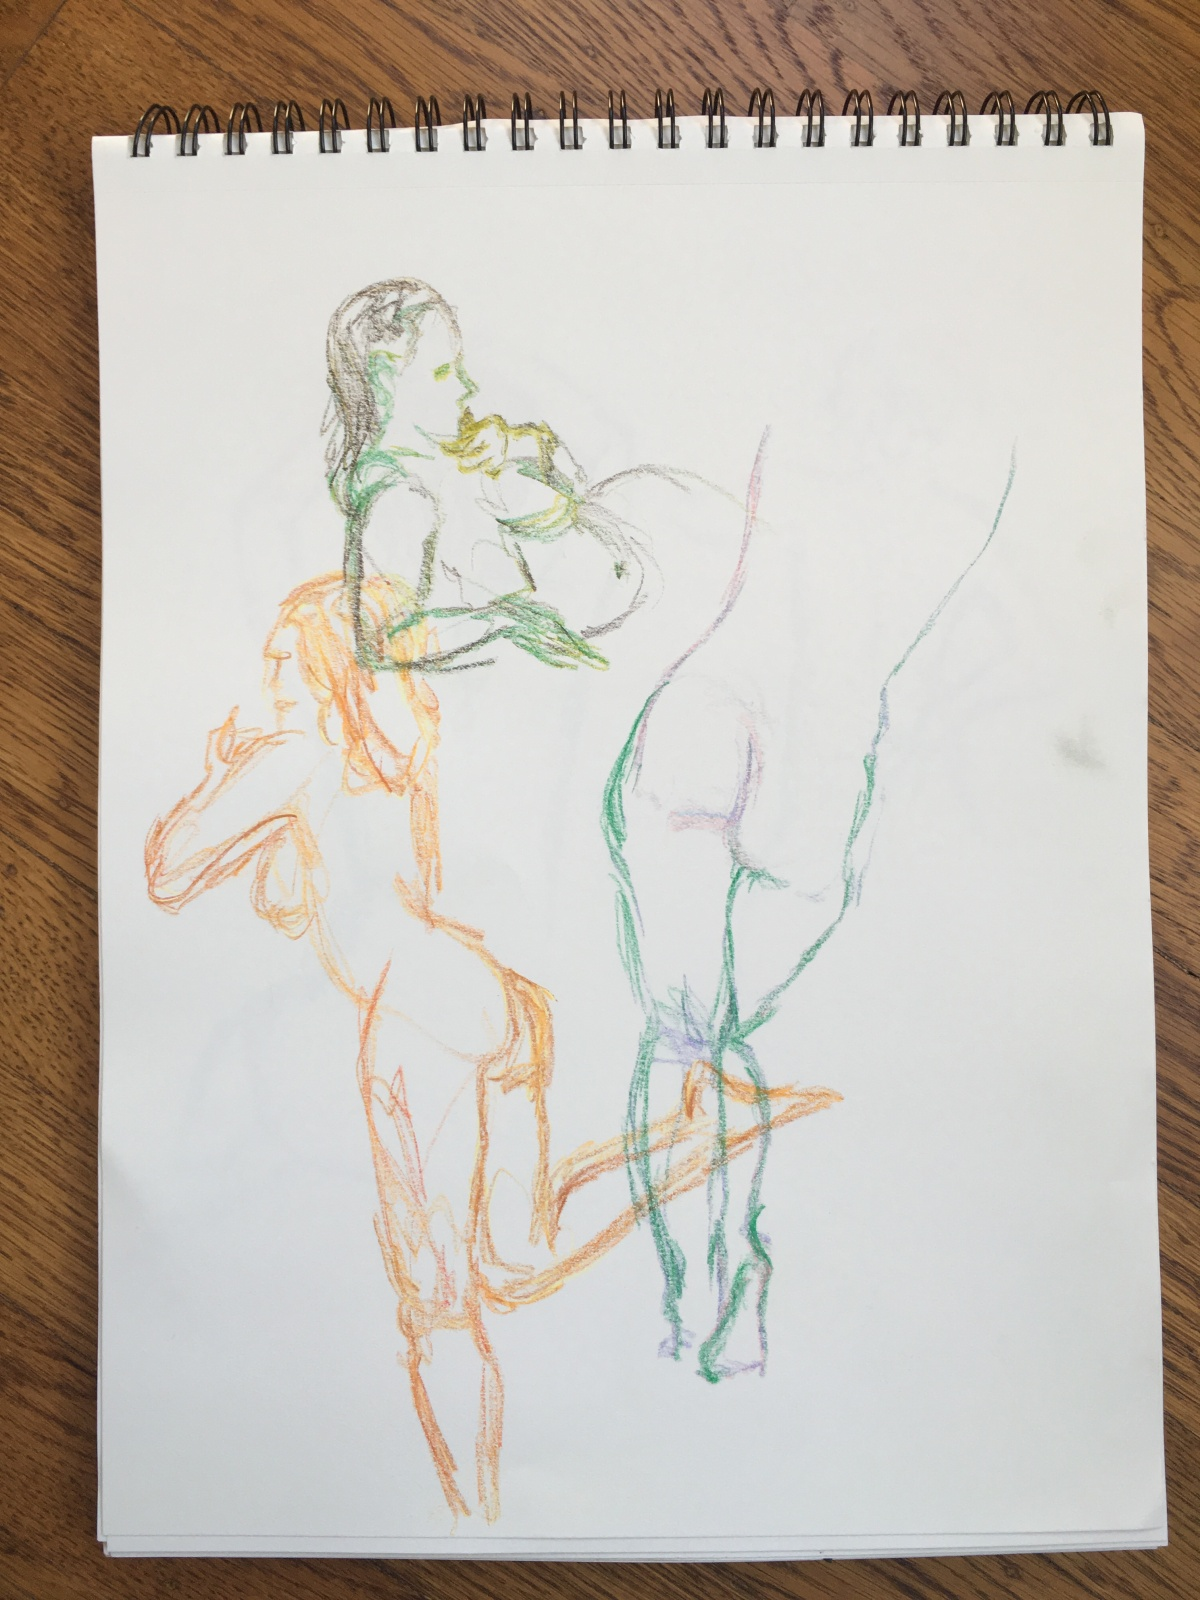 2-minute crayon sketches of a nude woman, by Lisa Hsia, January 2018